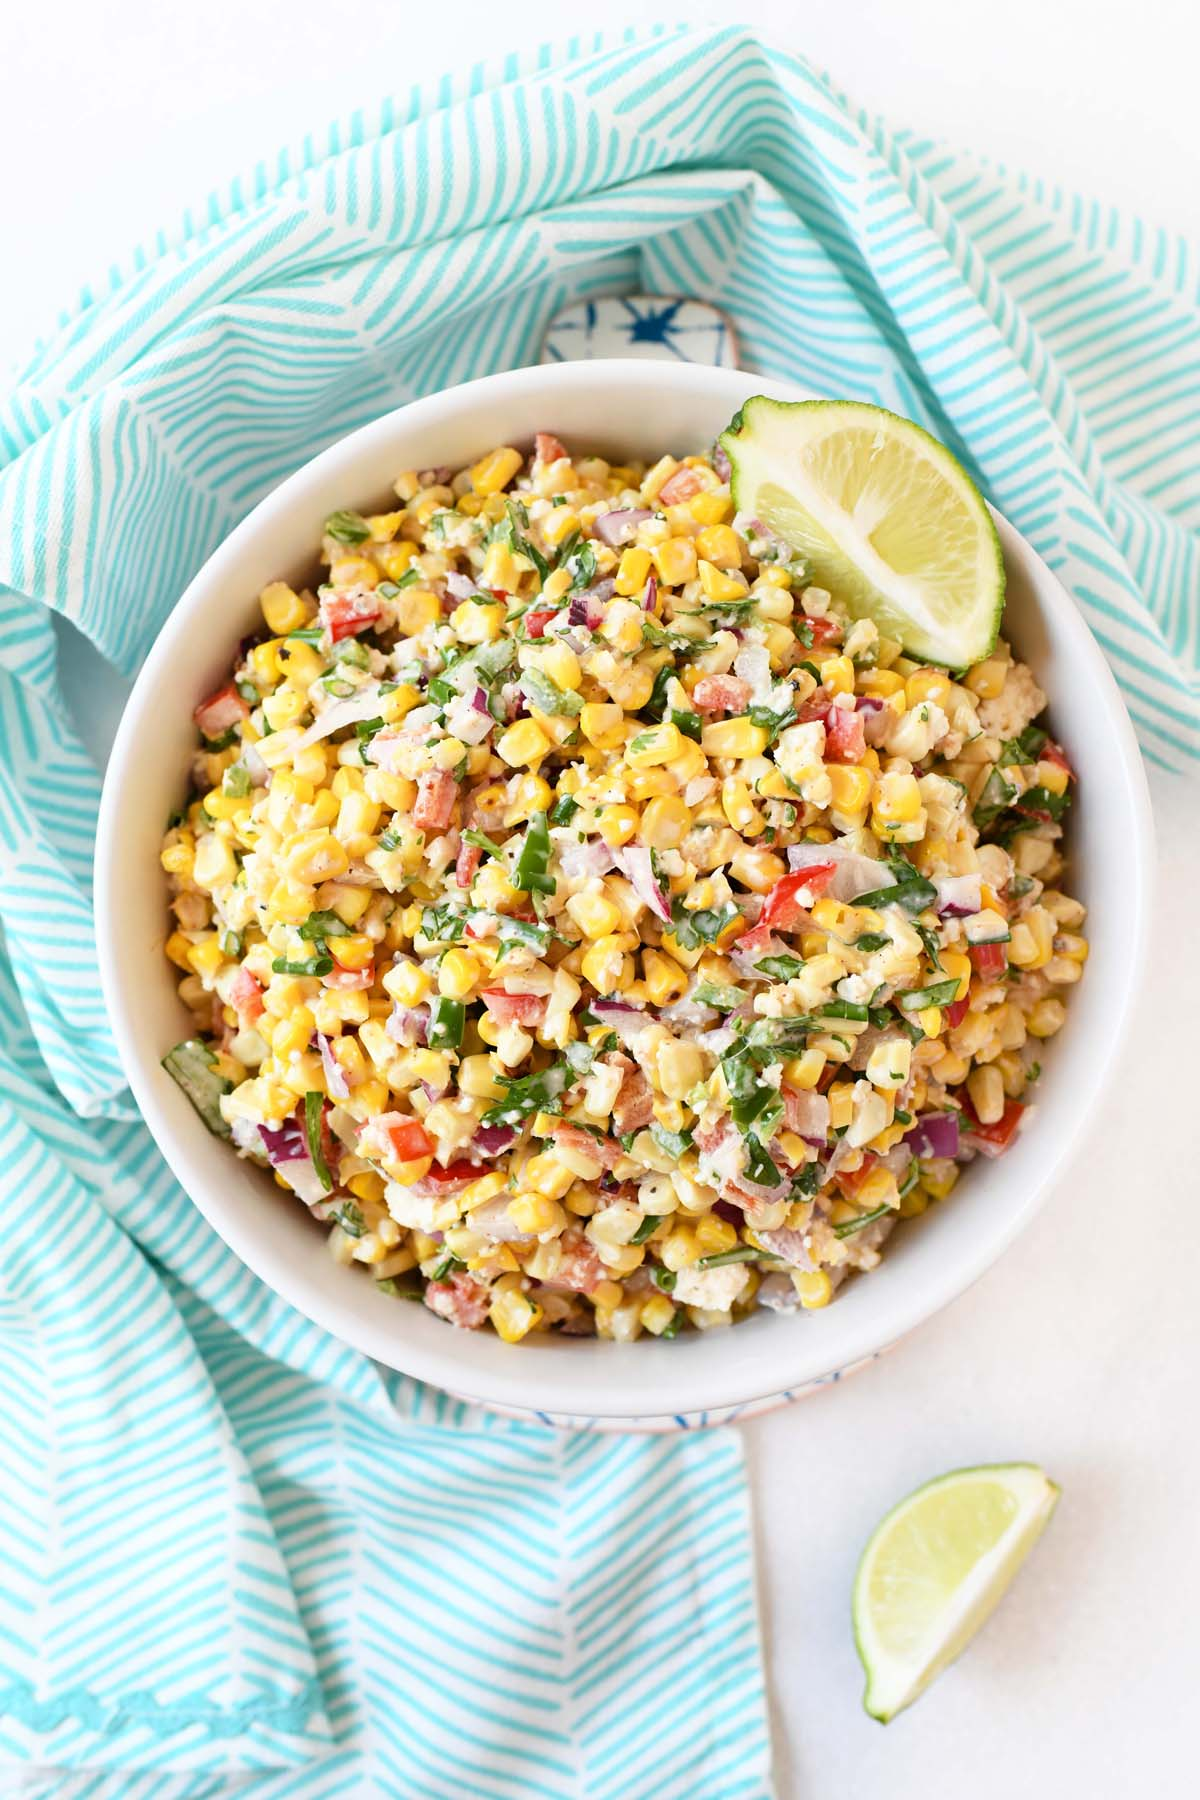 Mexican Corn Salad with cotija cheese in a white bowl with a blue napkin.